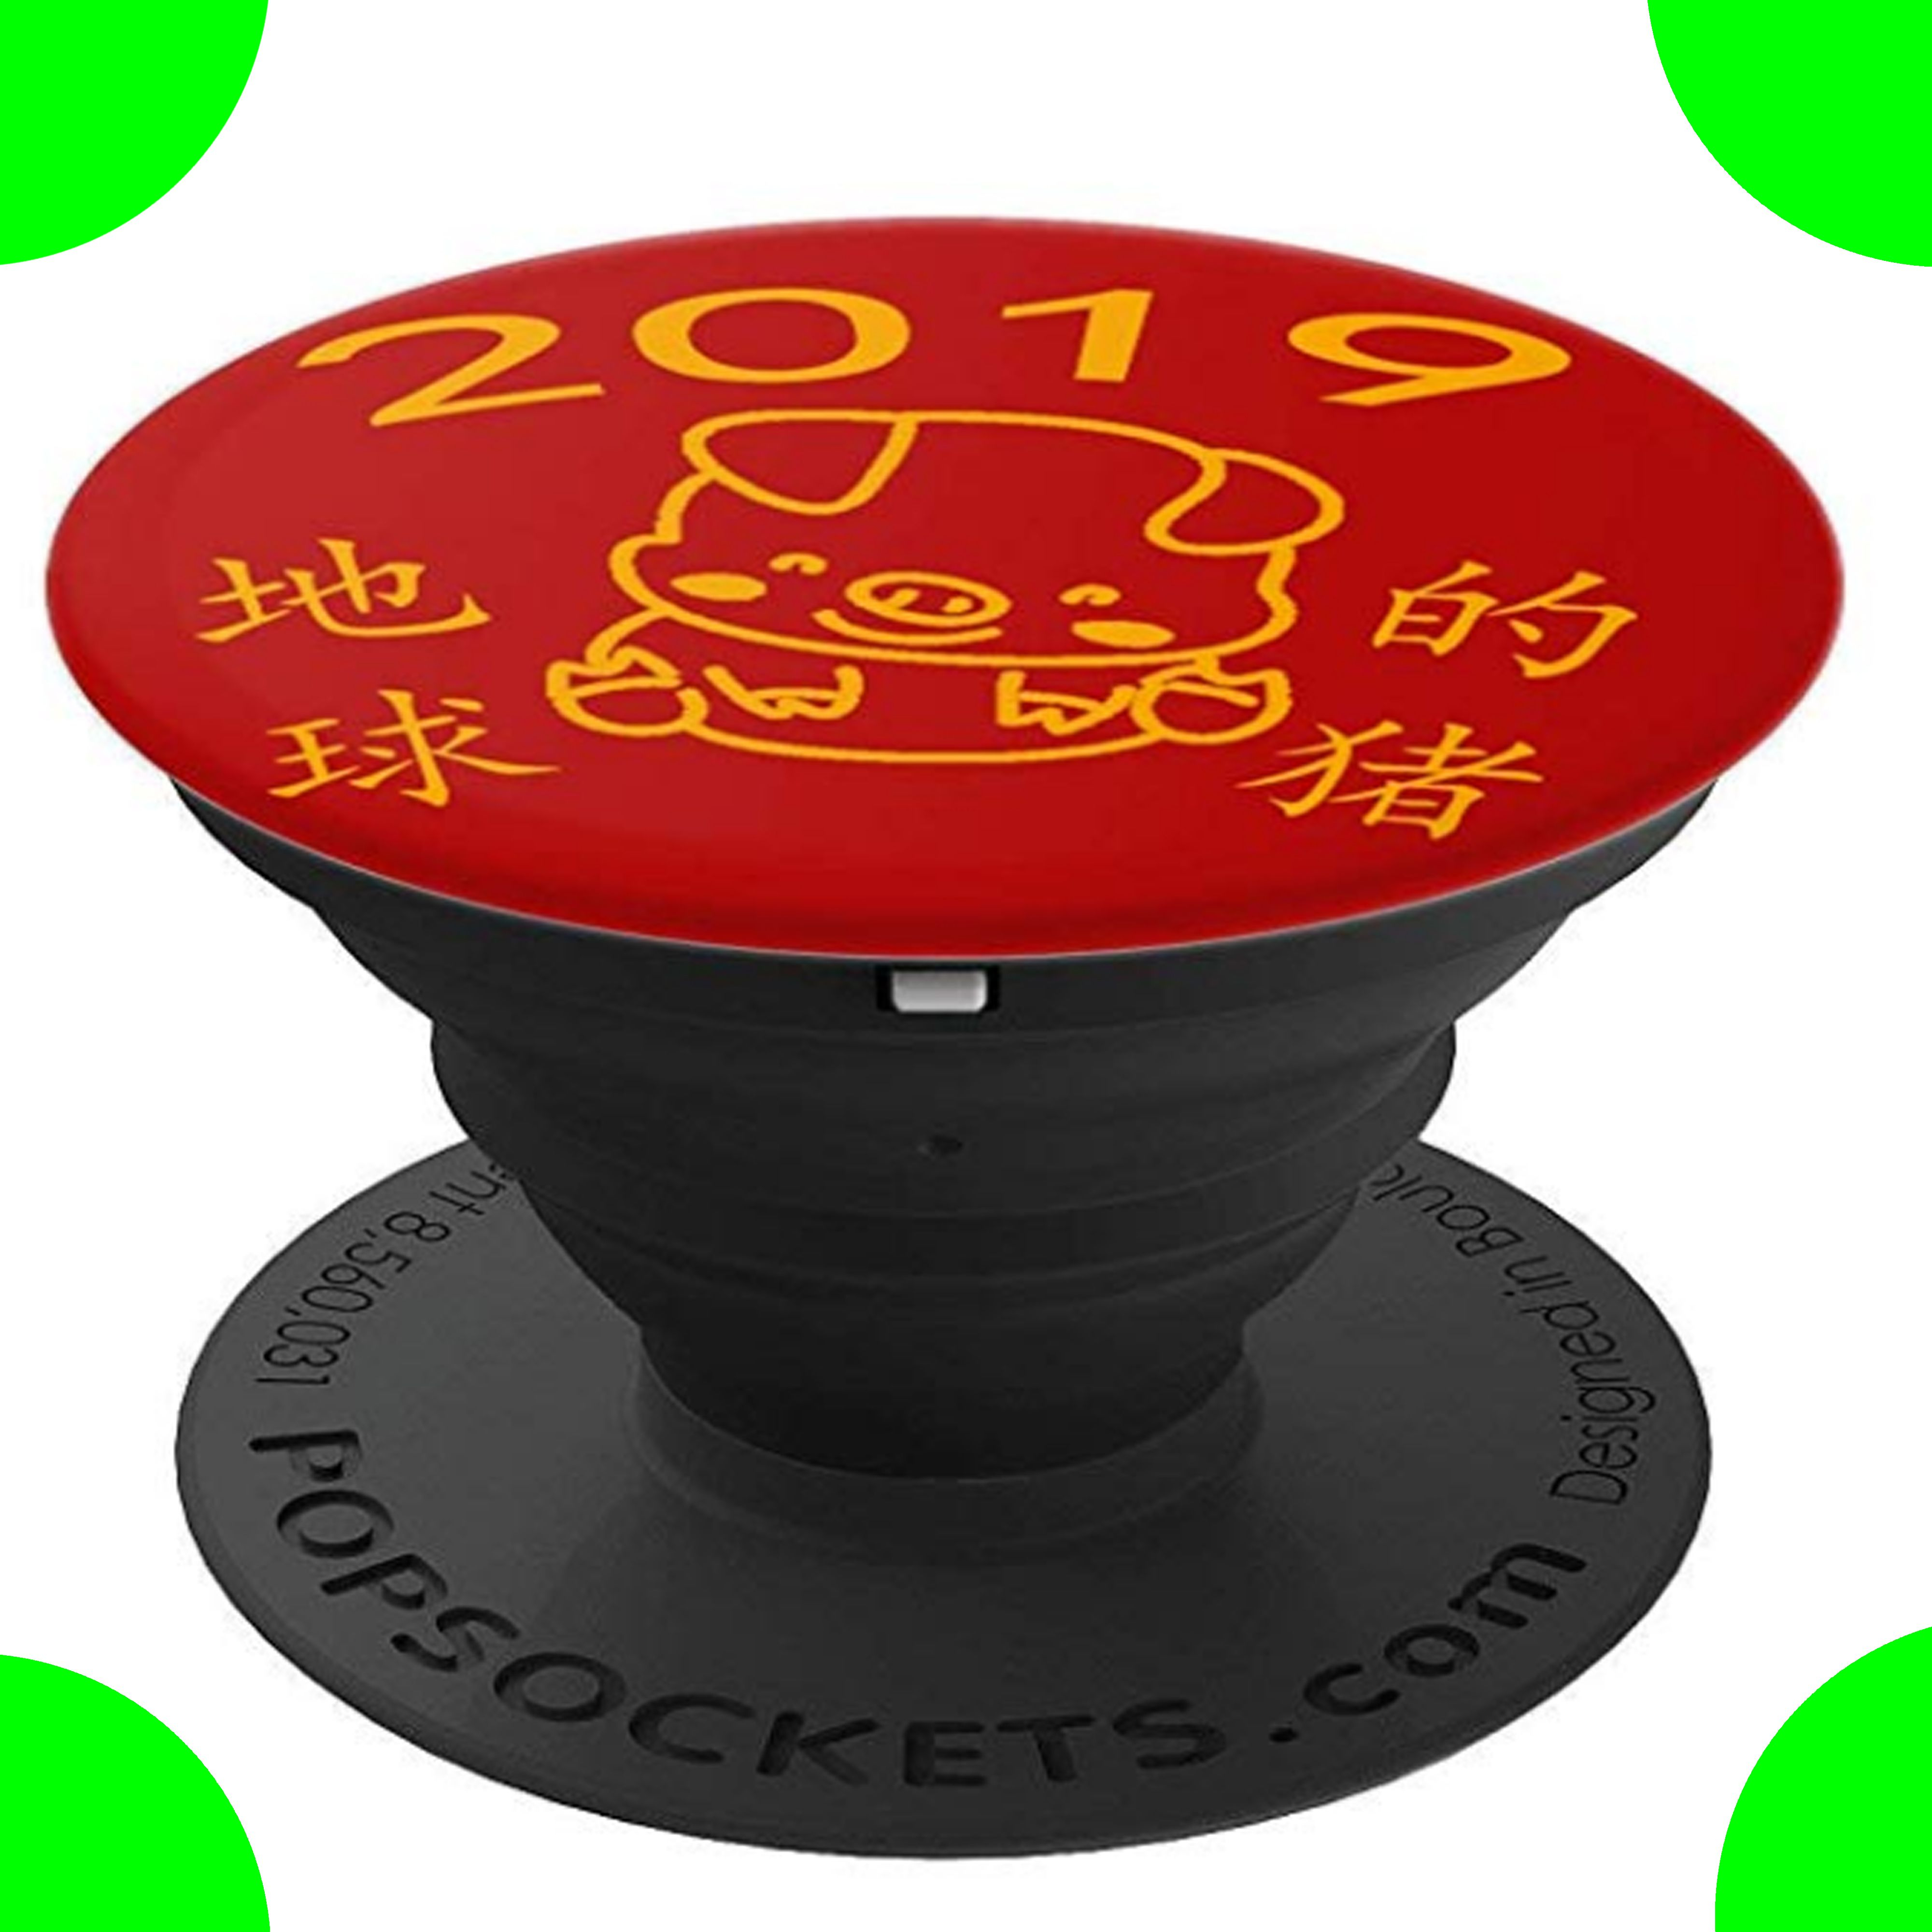 #chinese #new #year #2019 #popsocket #gear #gadget #design ...